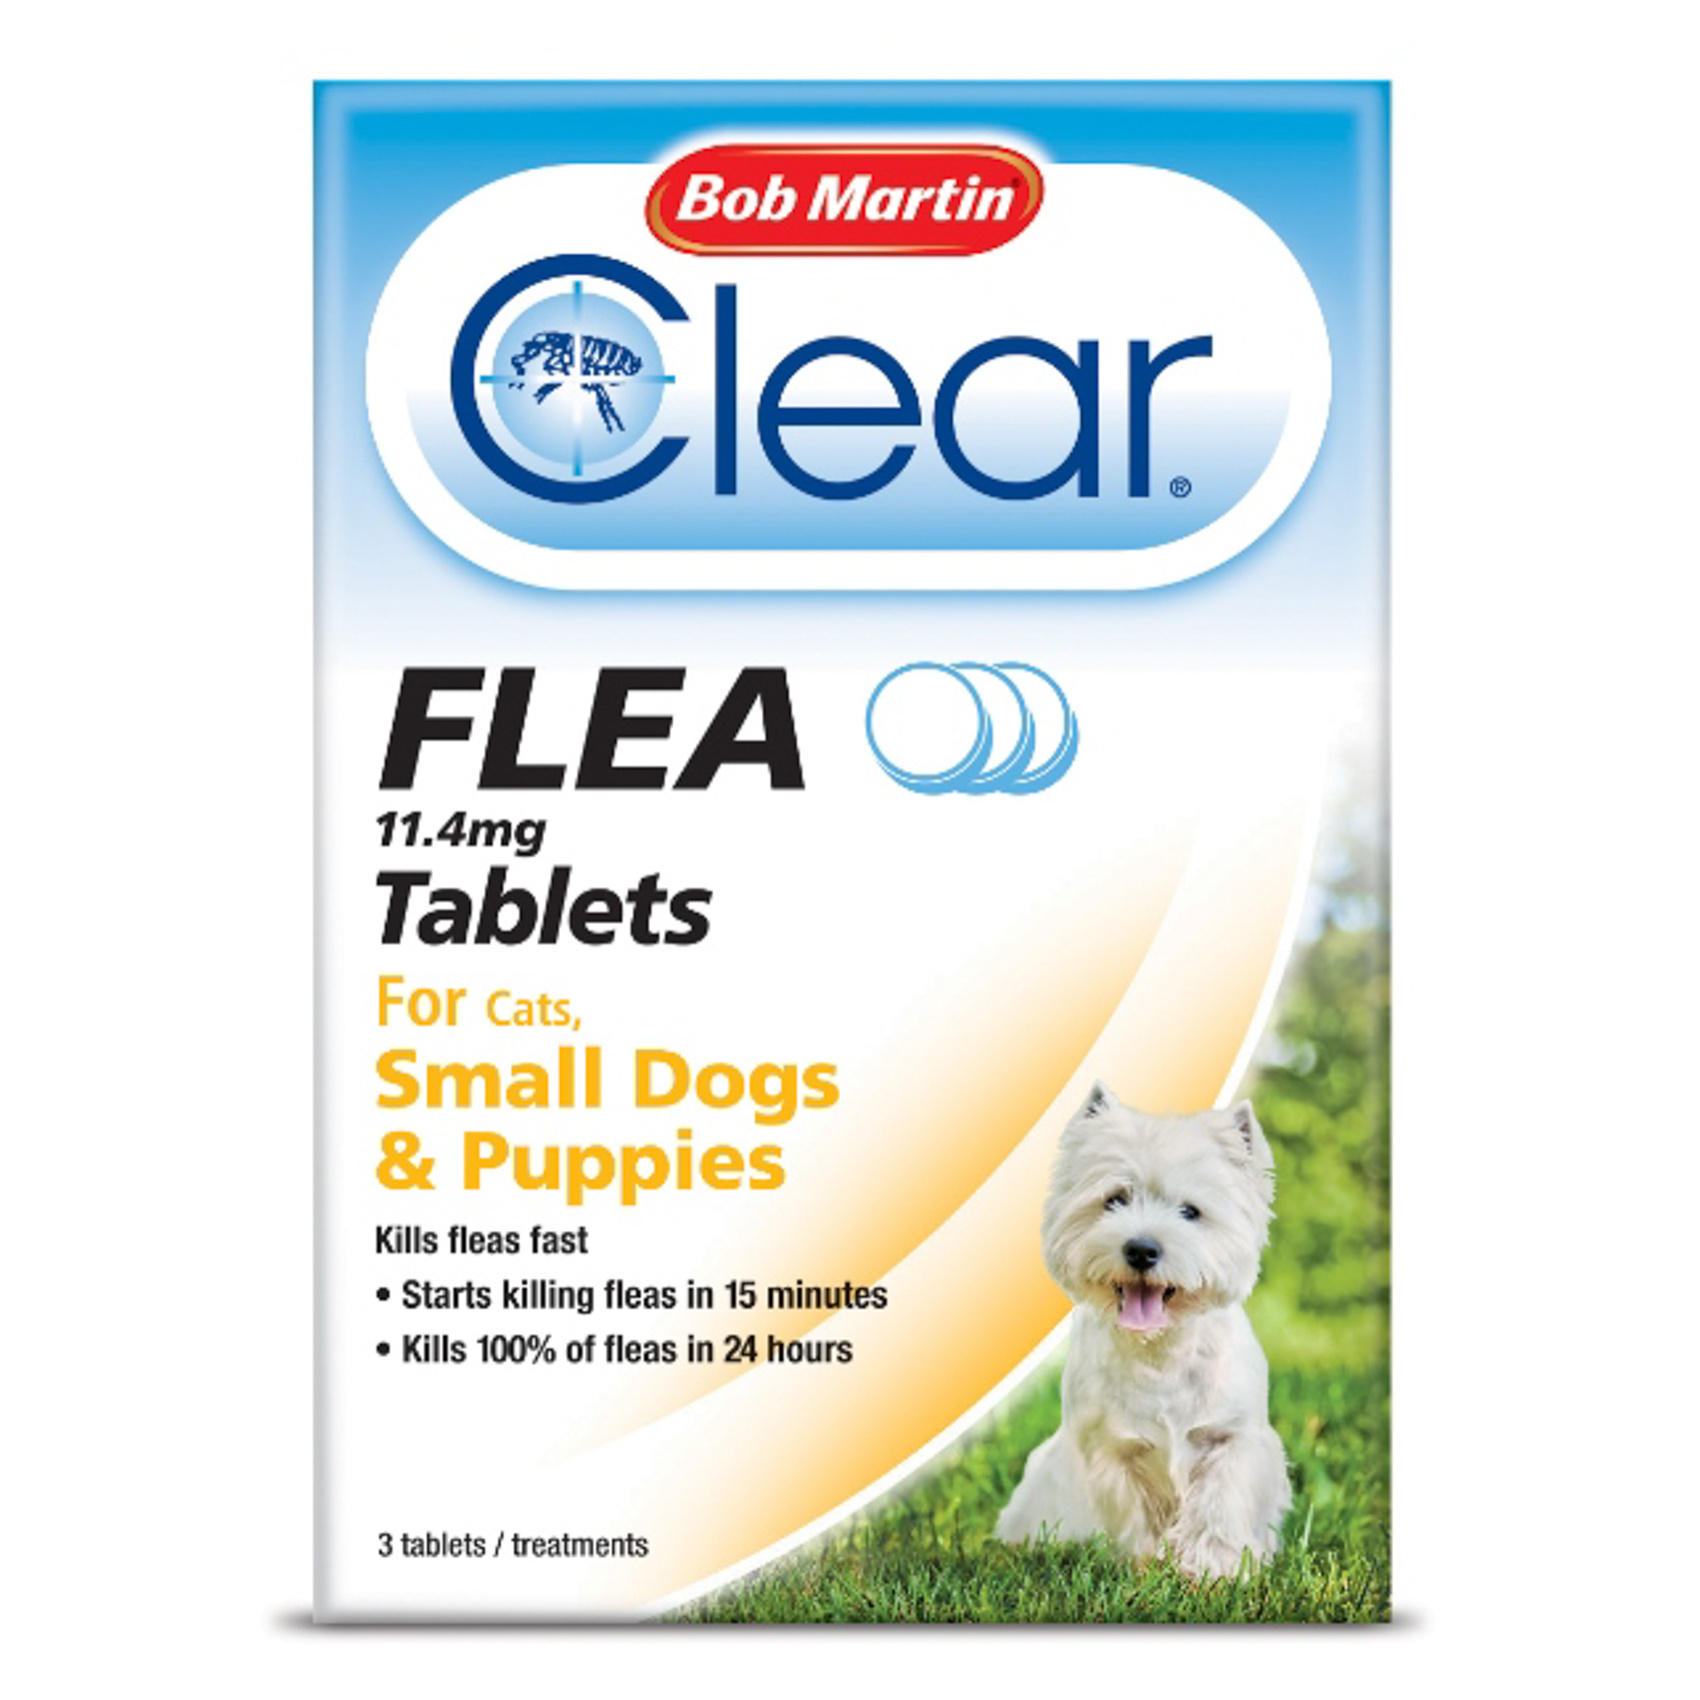 Bob Martin Flea Tablets For Small Dogs Under 11kg Puppies